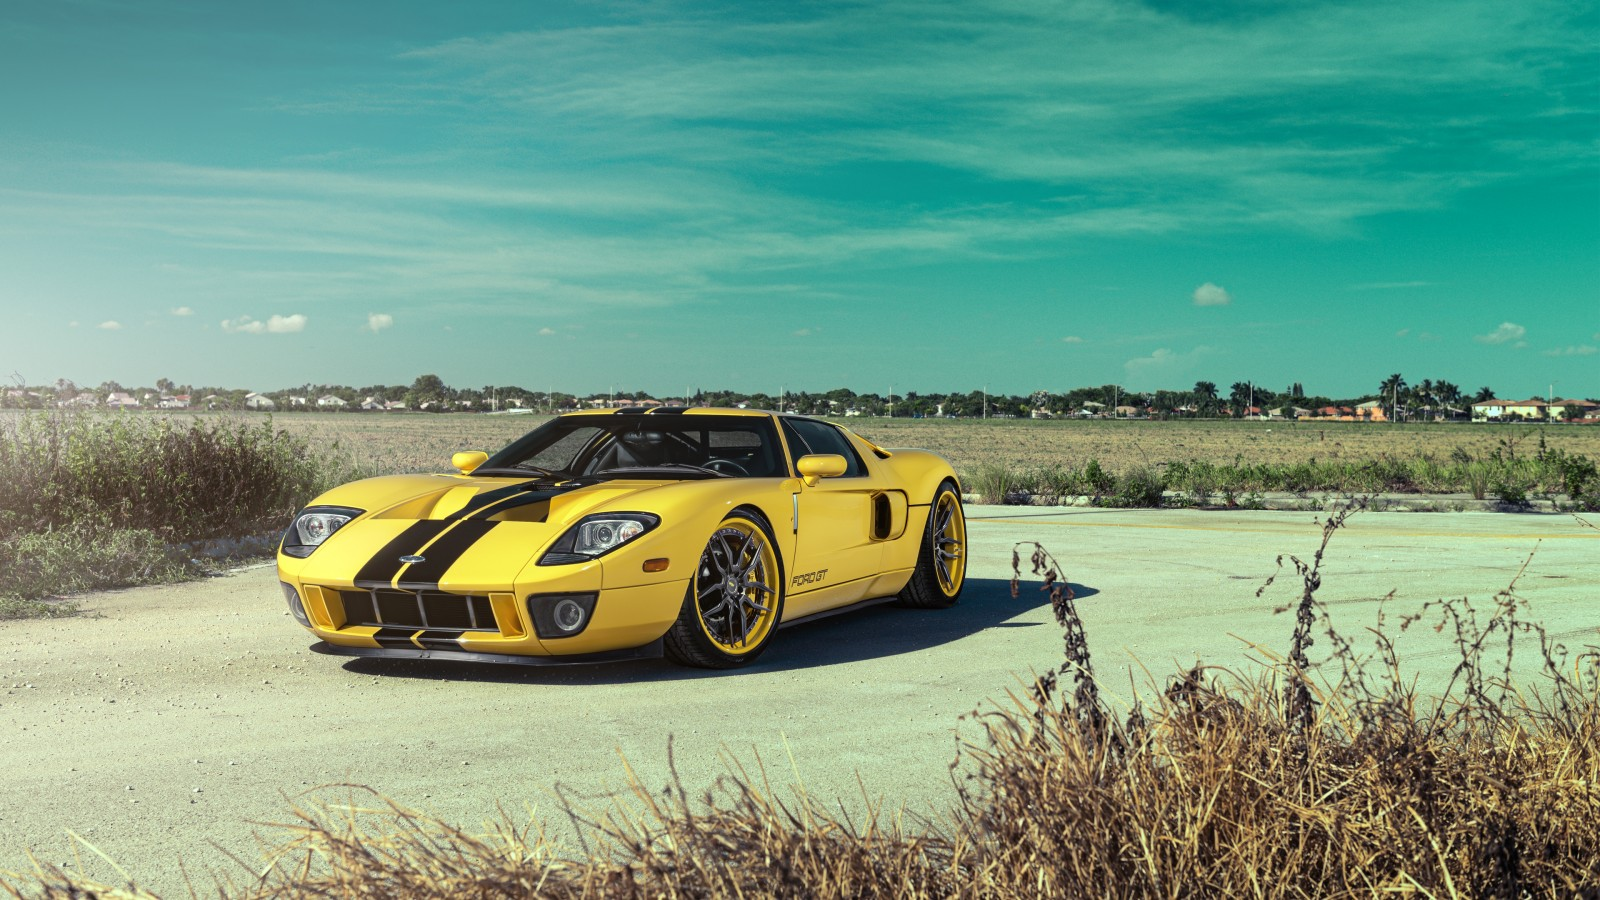 Ford Gt Supercars American Cars 2017 4k Uhd Widescreen: ADV1 Ford GT Wallpaper